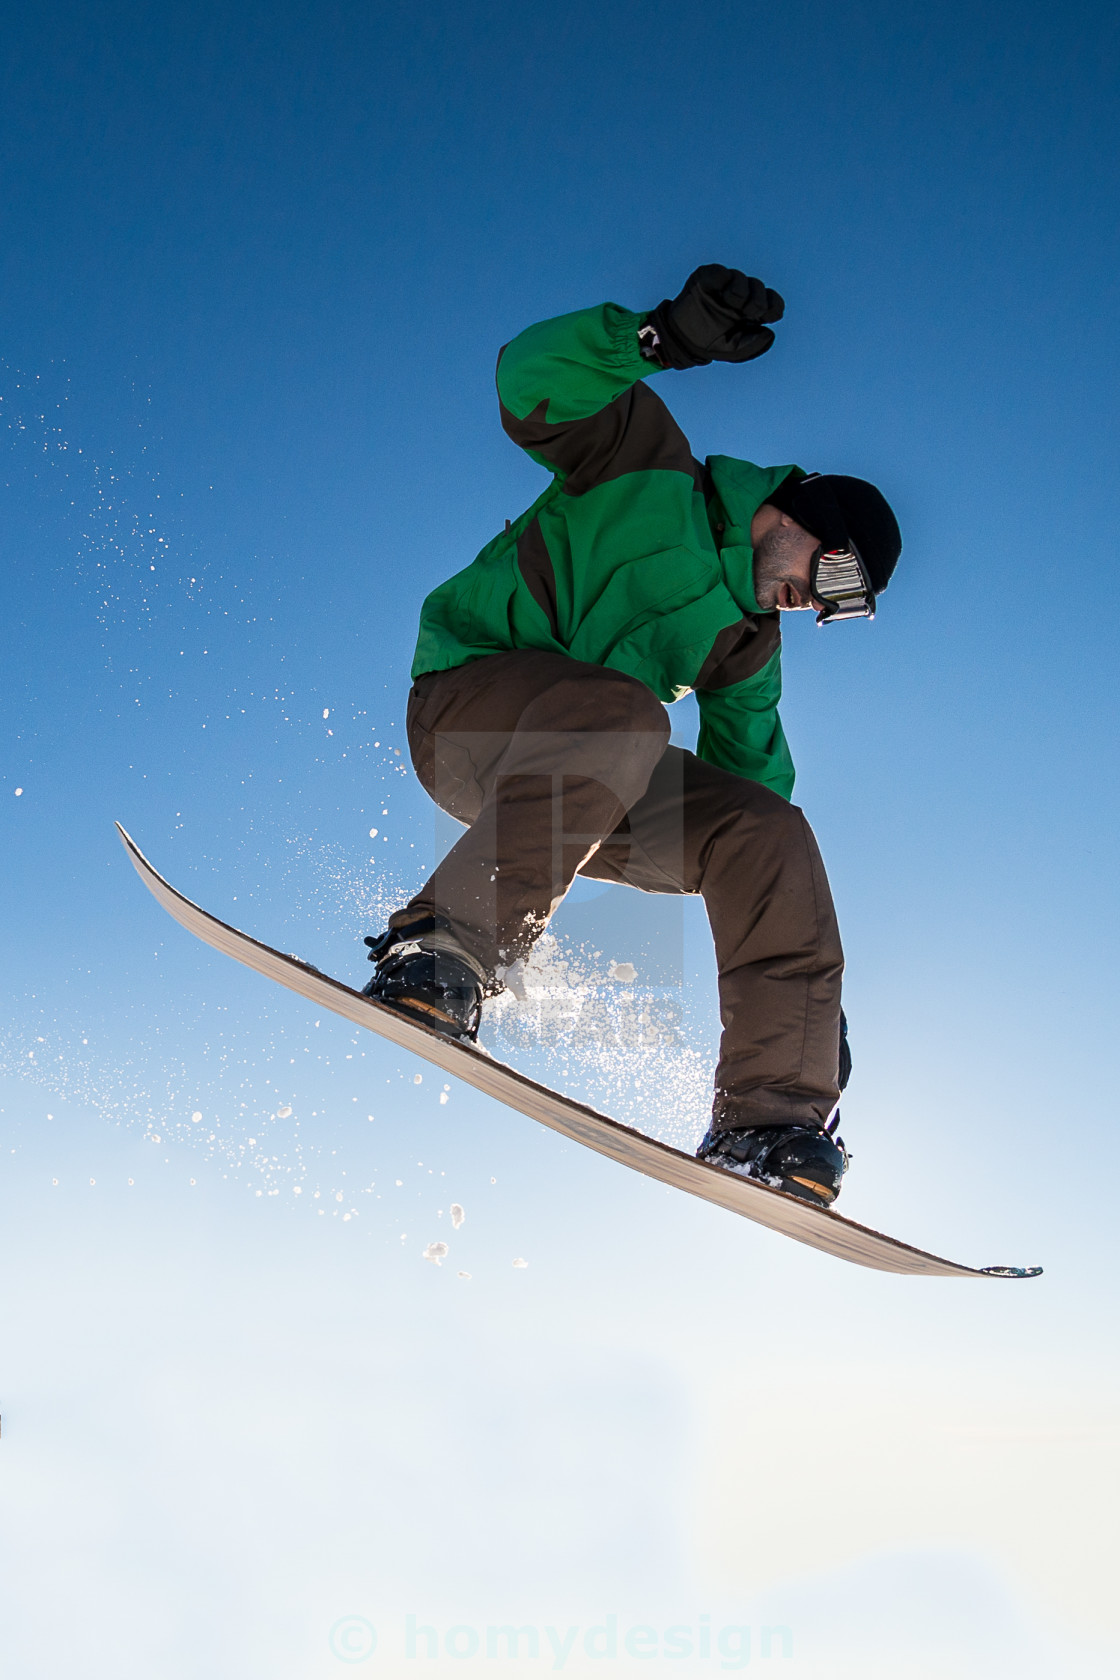 """Snowboarder jumping against blue sky"" stock image"